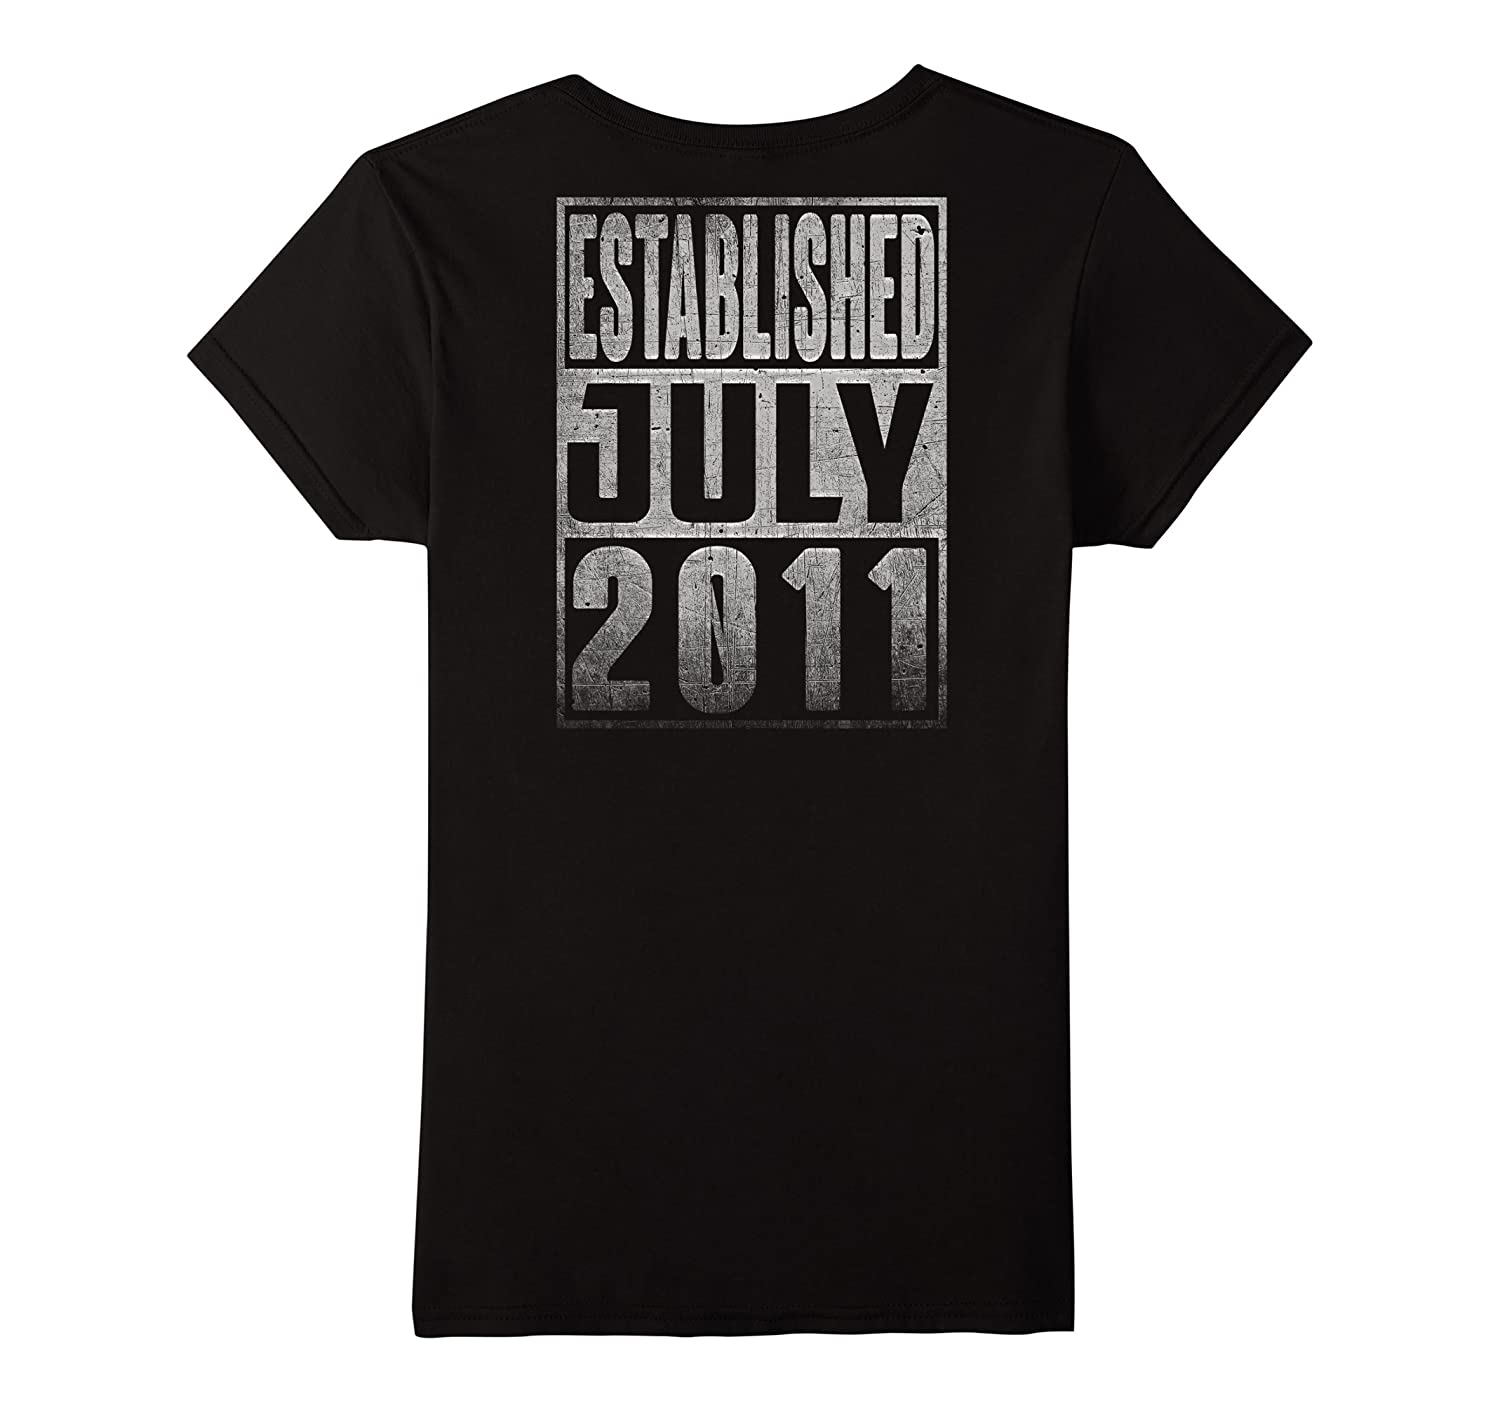 Established Since July 2011 Straight Outta Style 6 Yrs Old